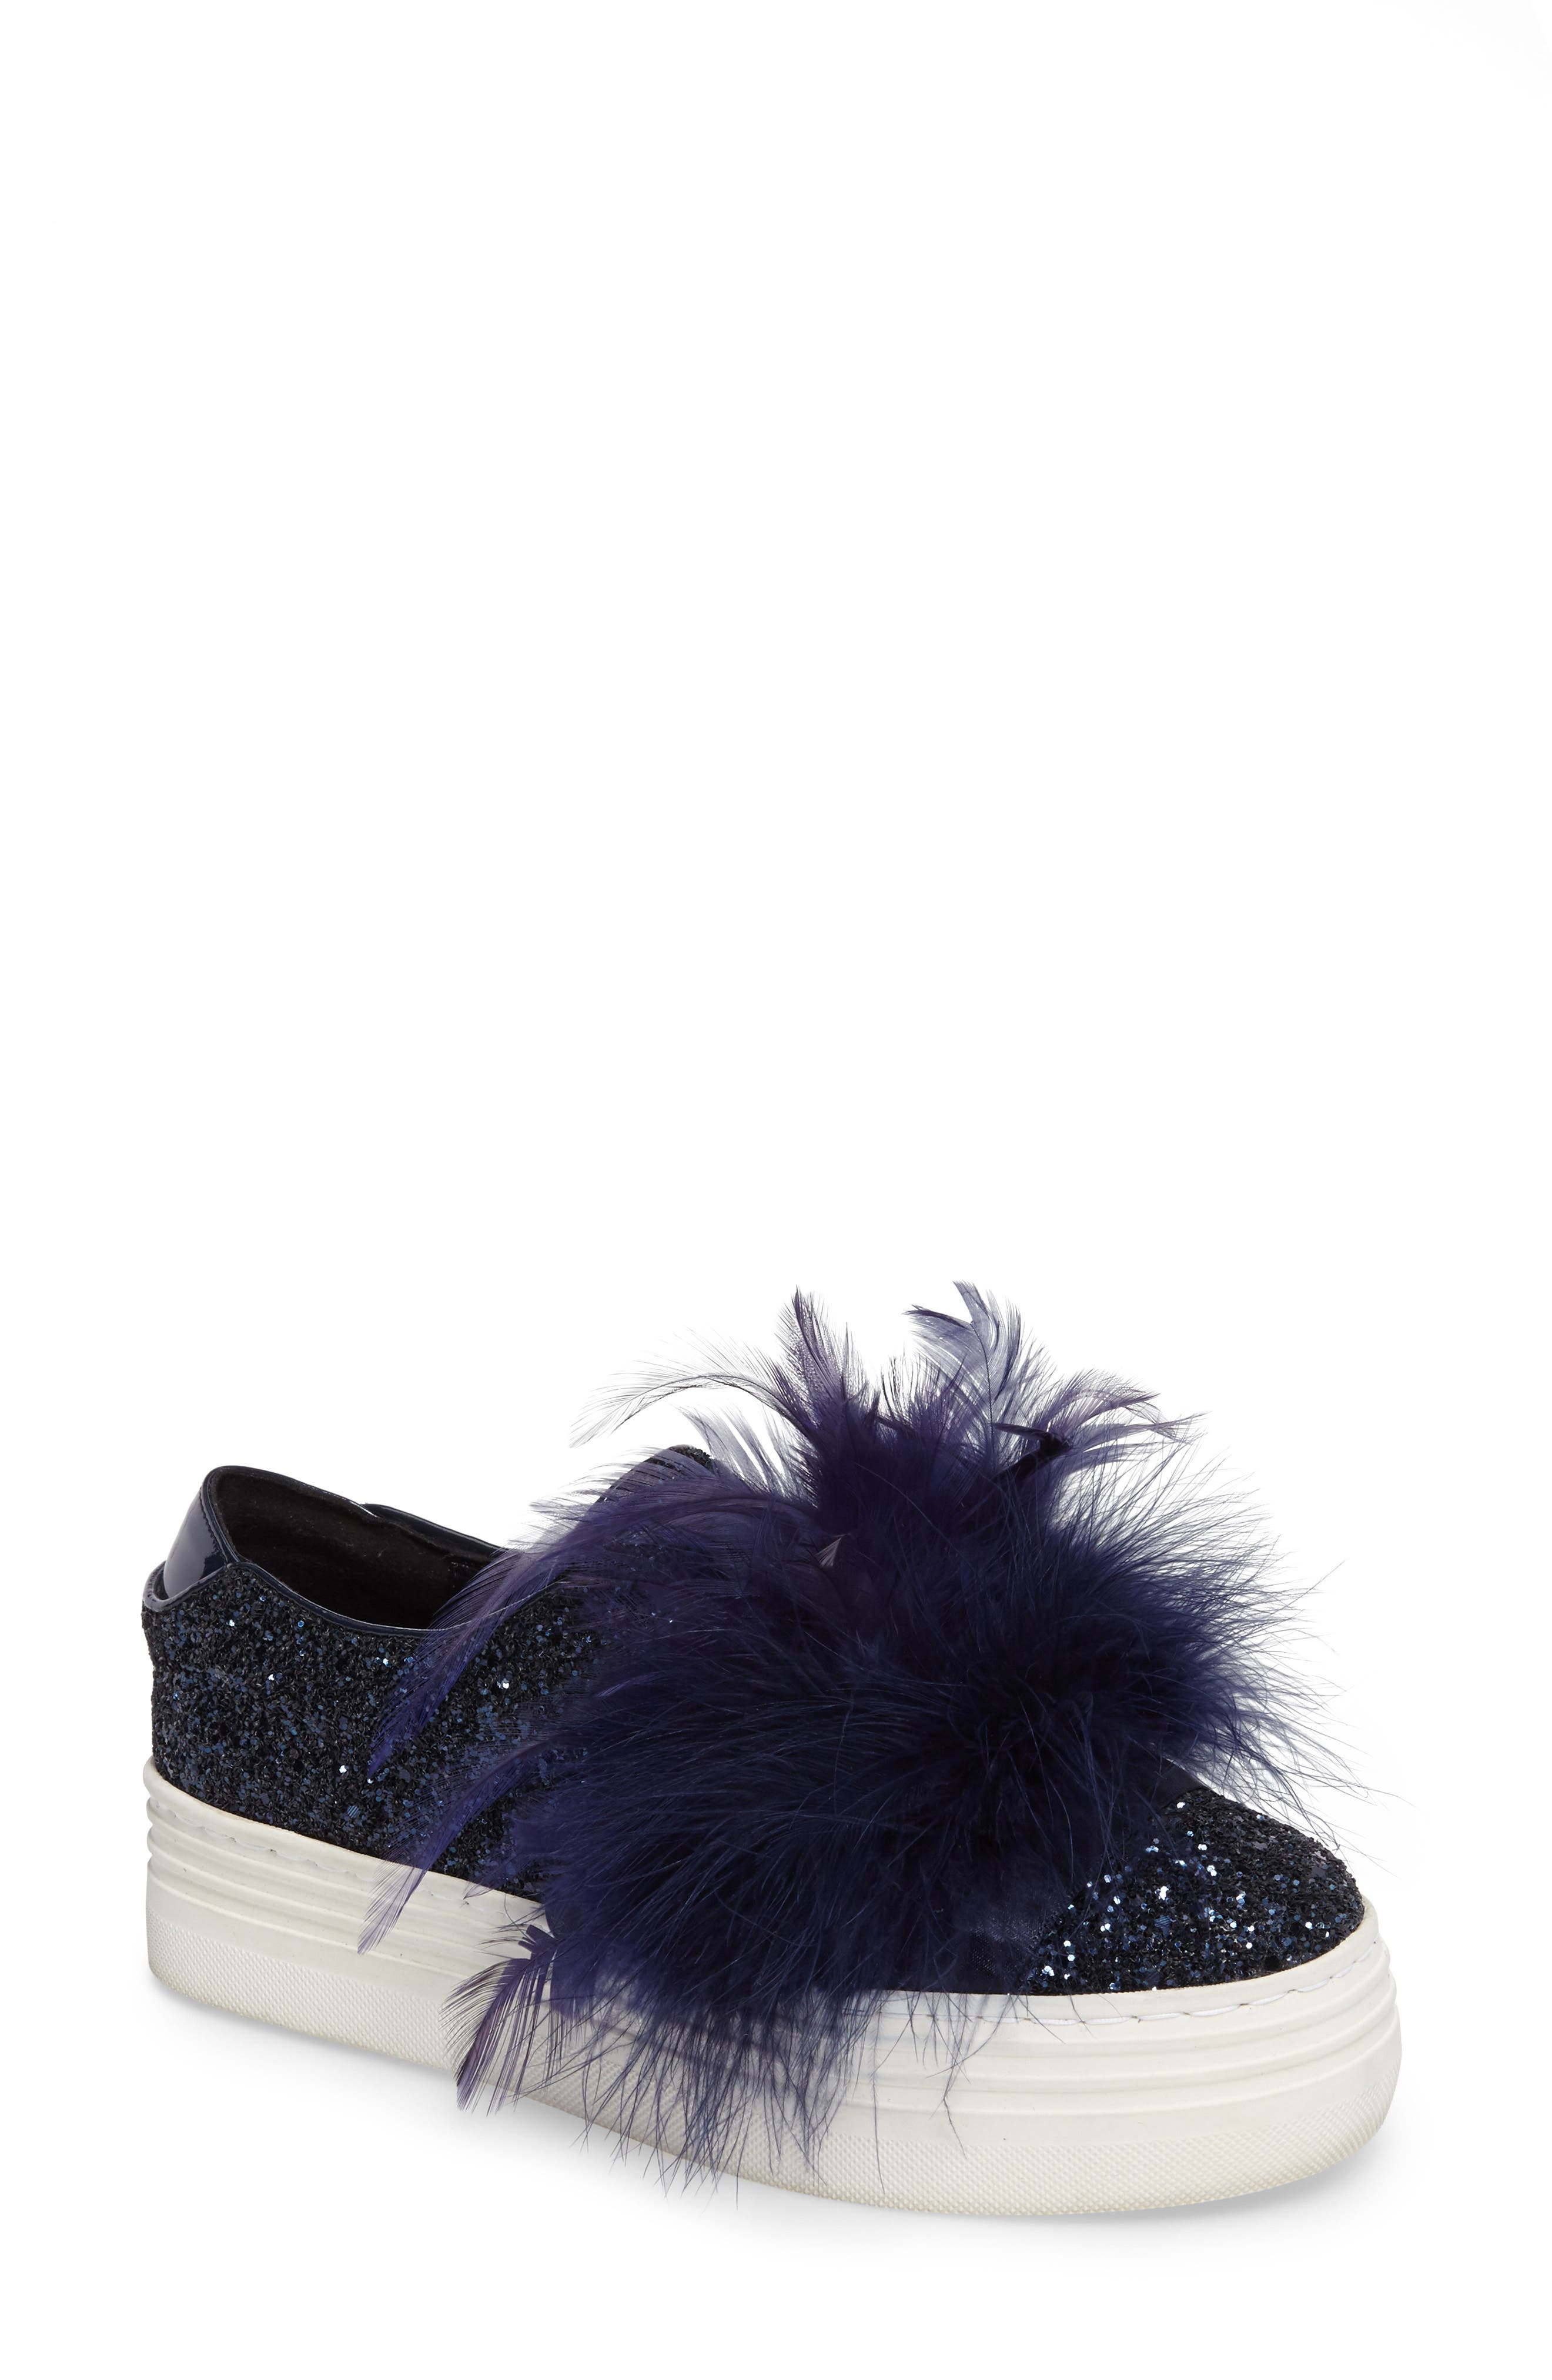 Main Image - Here / Now Mia Feather Slip-On Sneaker (Women)